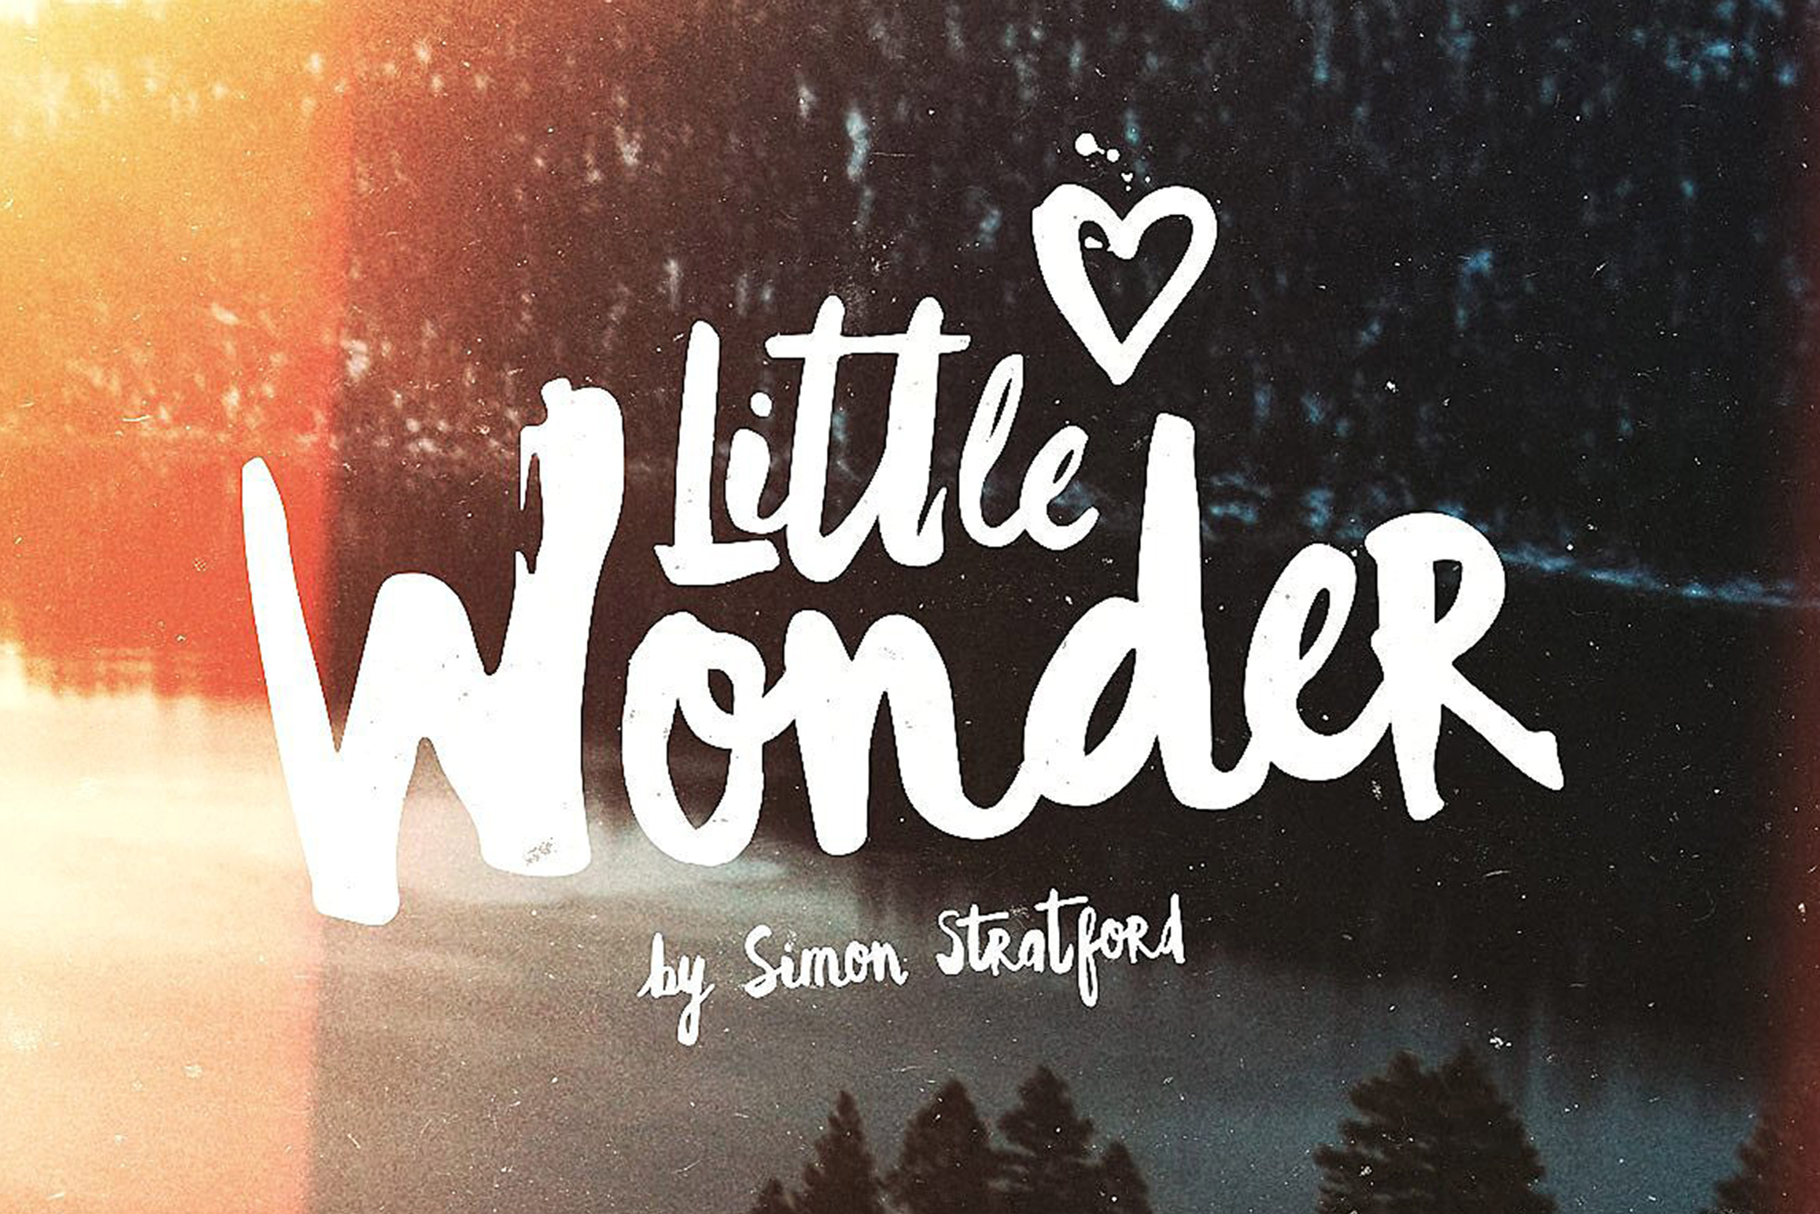 Little Wonder by Simon Stratford